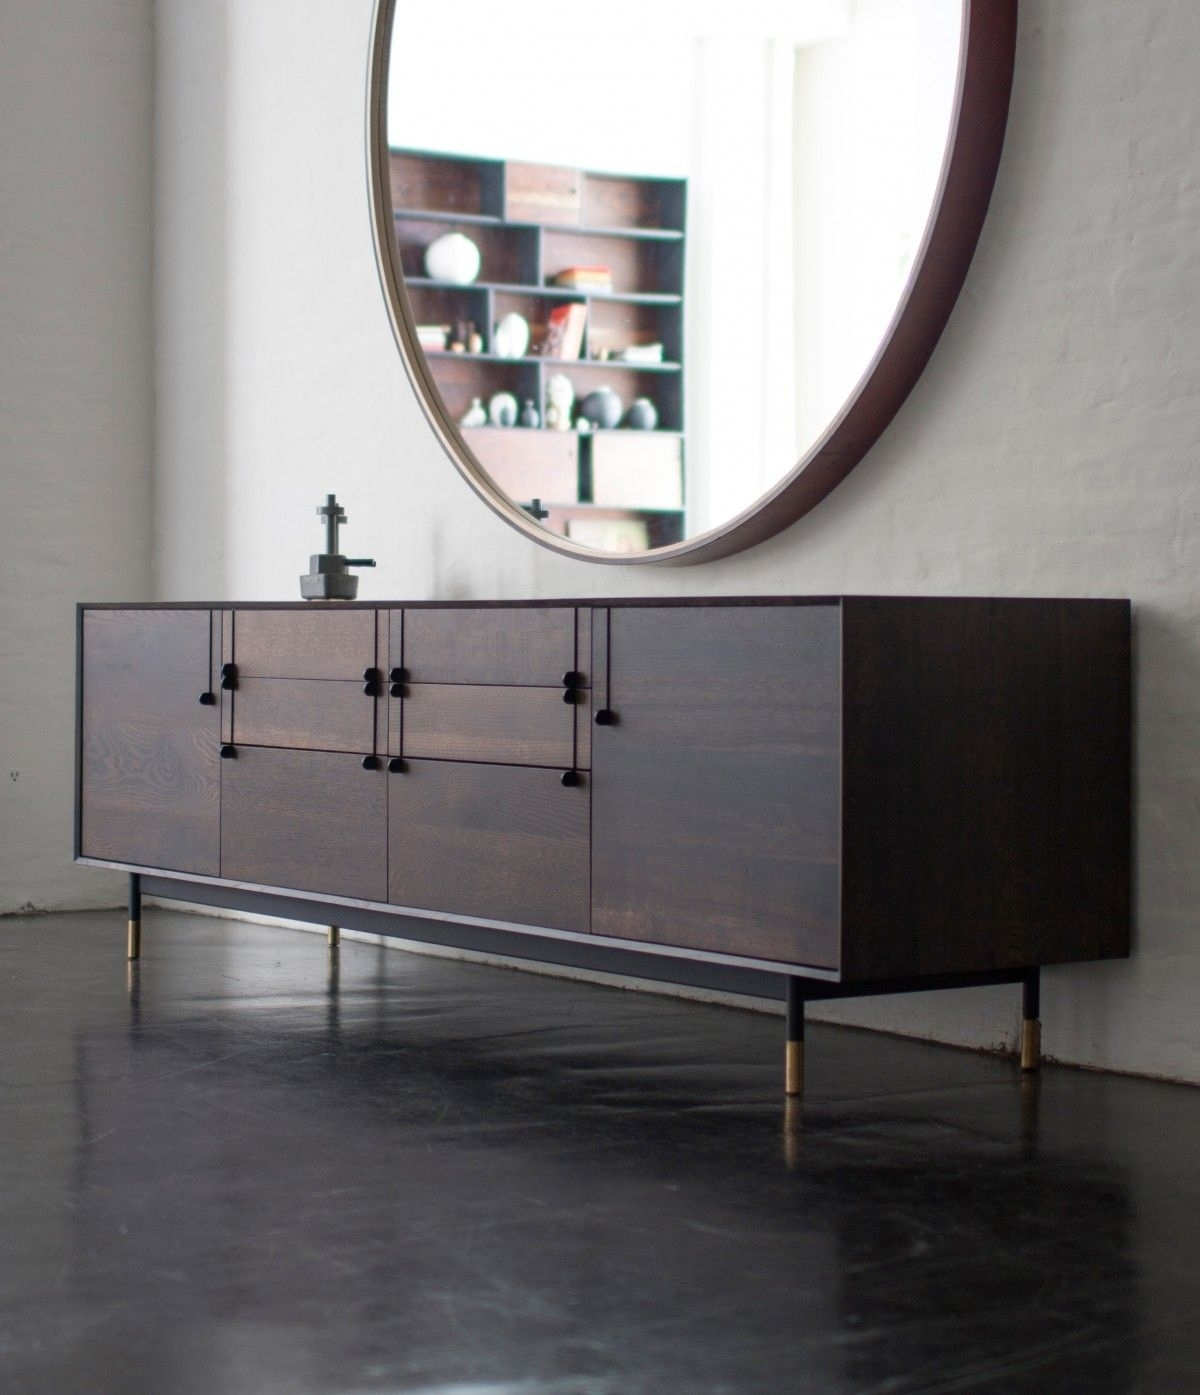 Furniture | Lake Credenza | Bddw | Sideboard | Pinterest | Furniture with Capiz Refinement Sideboards (Image 10 of 30)